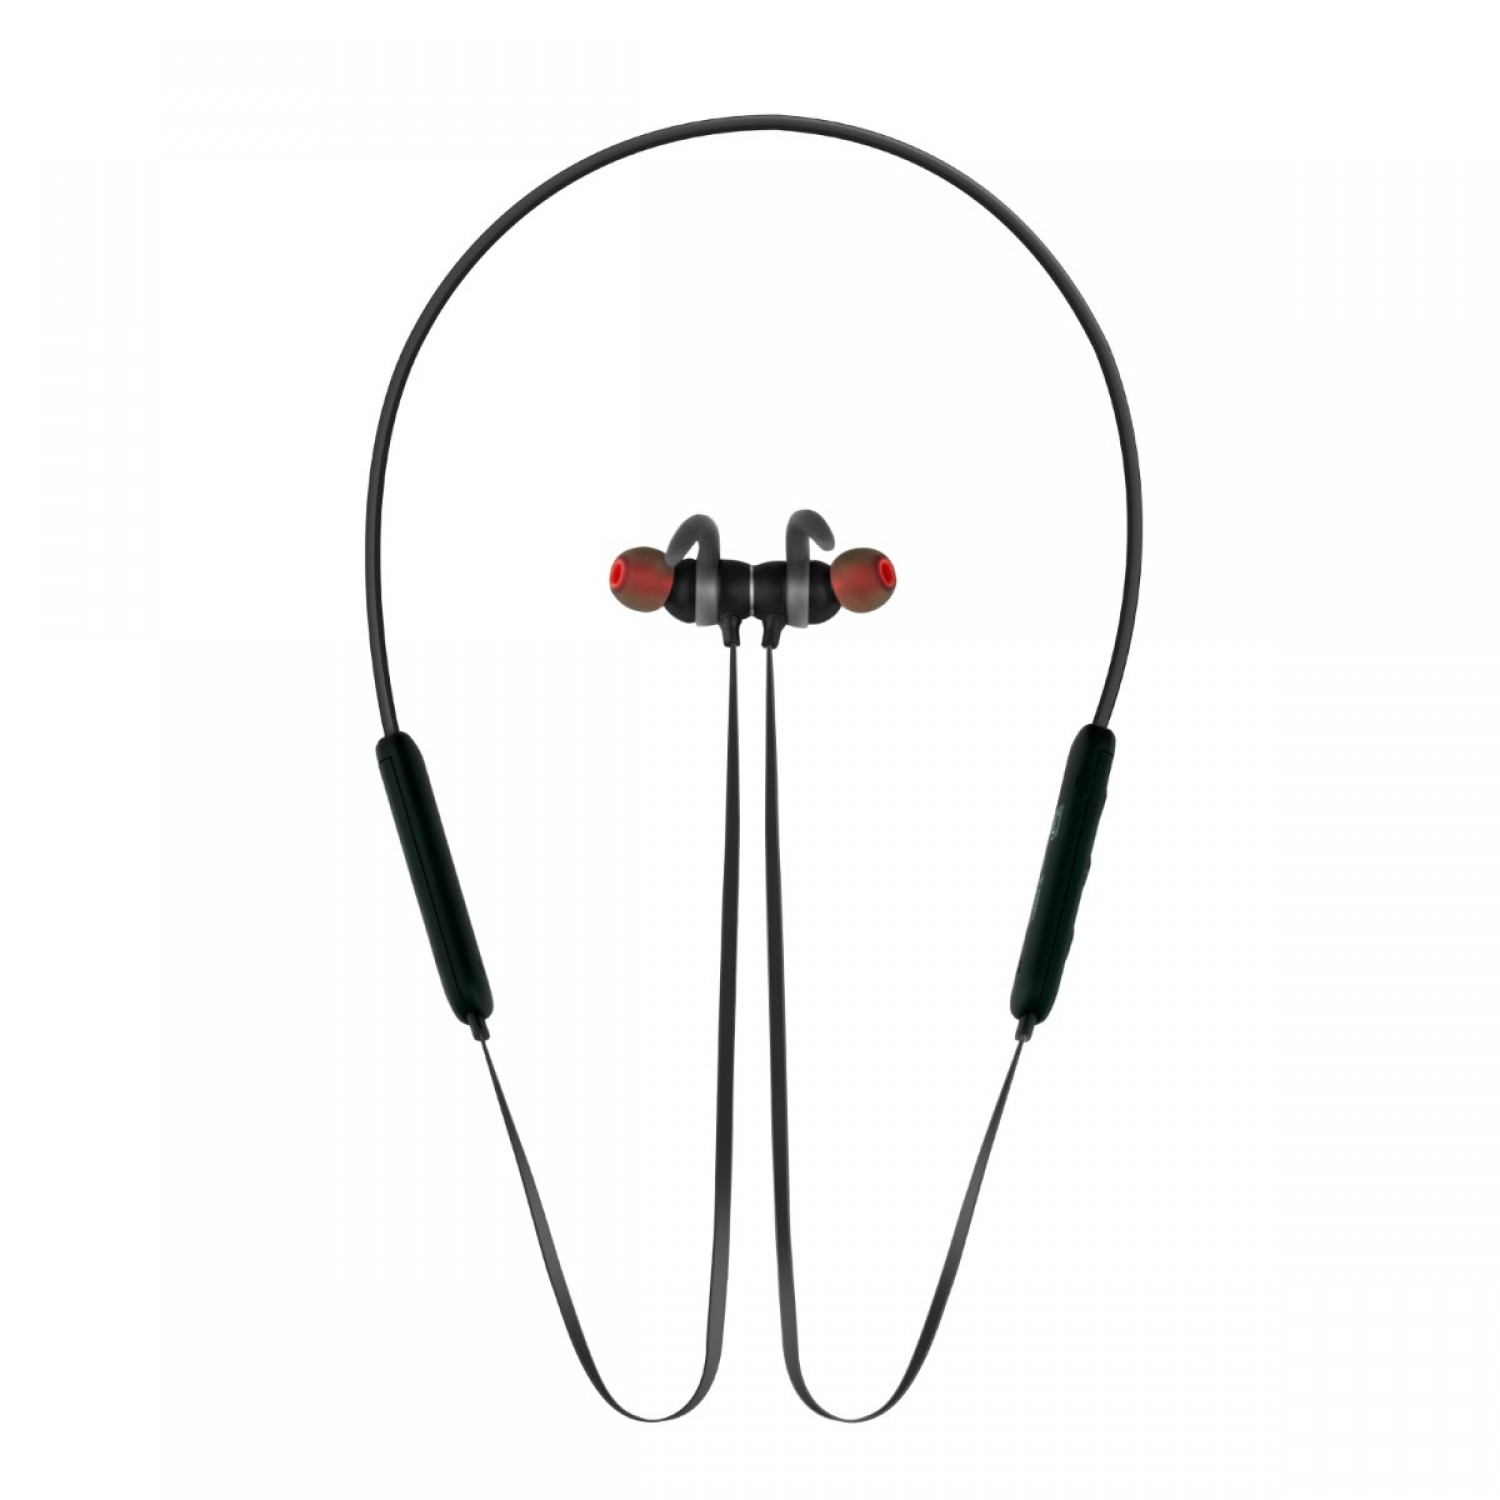 Promate Bluetooth Headphone, High Definition Wireless Neckband Headset with Built-In Microphone, Noise Cancelling and Magnetic Earphones for All Bluetooth Enabled Devices Spicy-1 Black